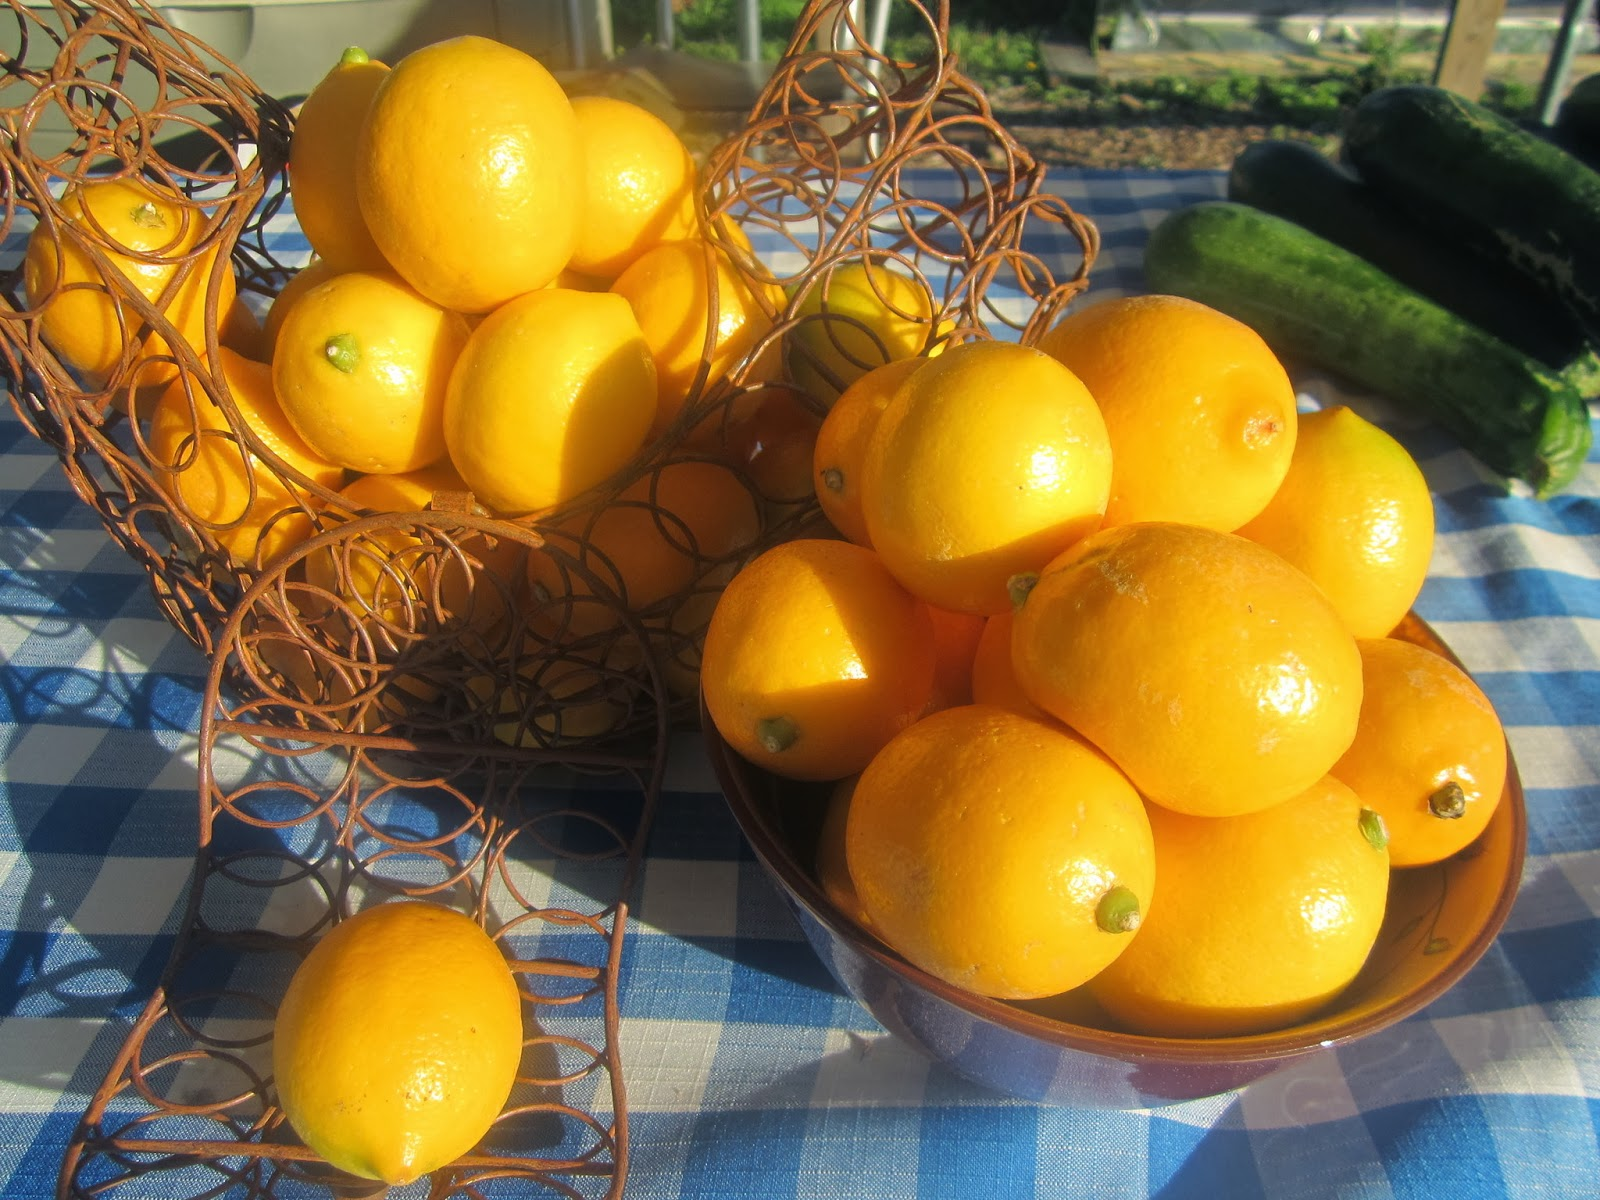 A table with a display of freshly harvested citrus fruits